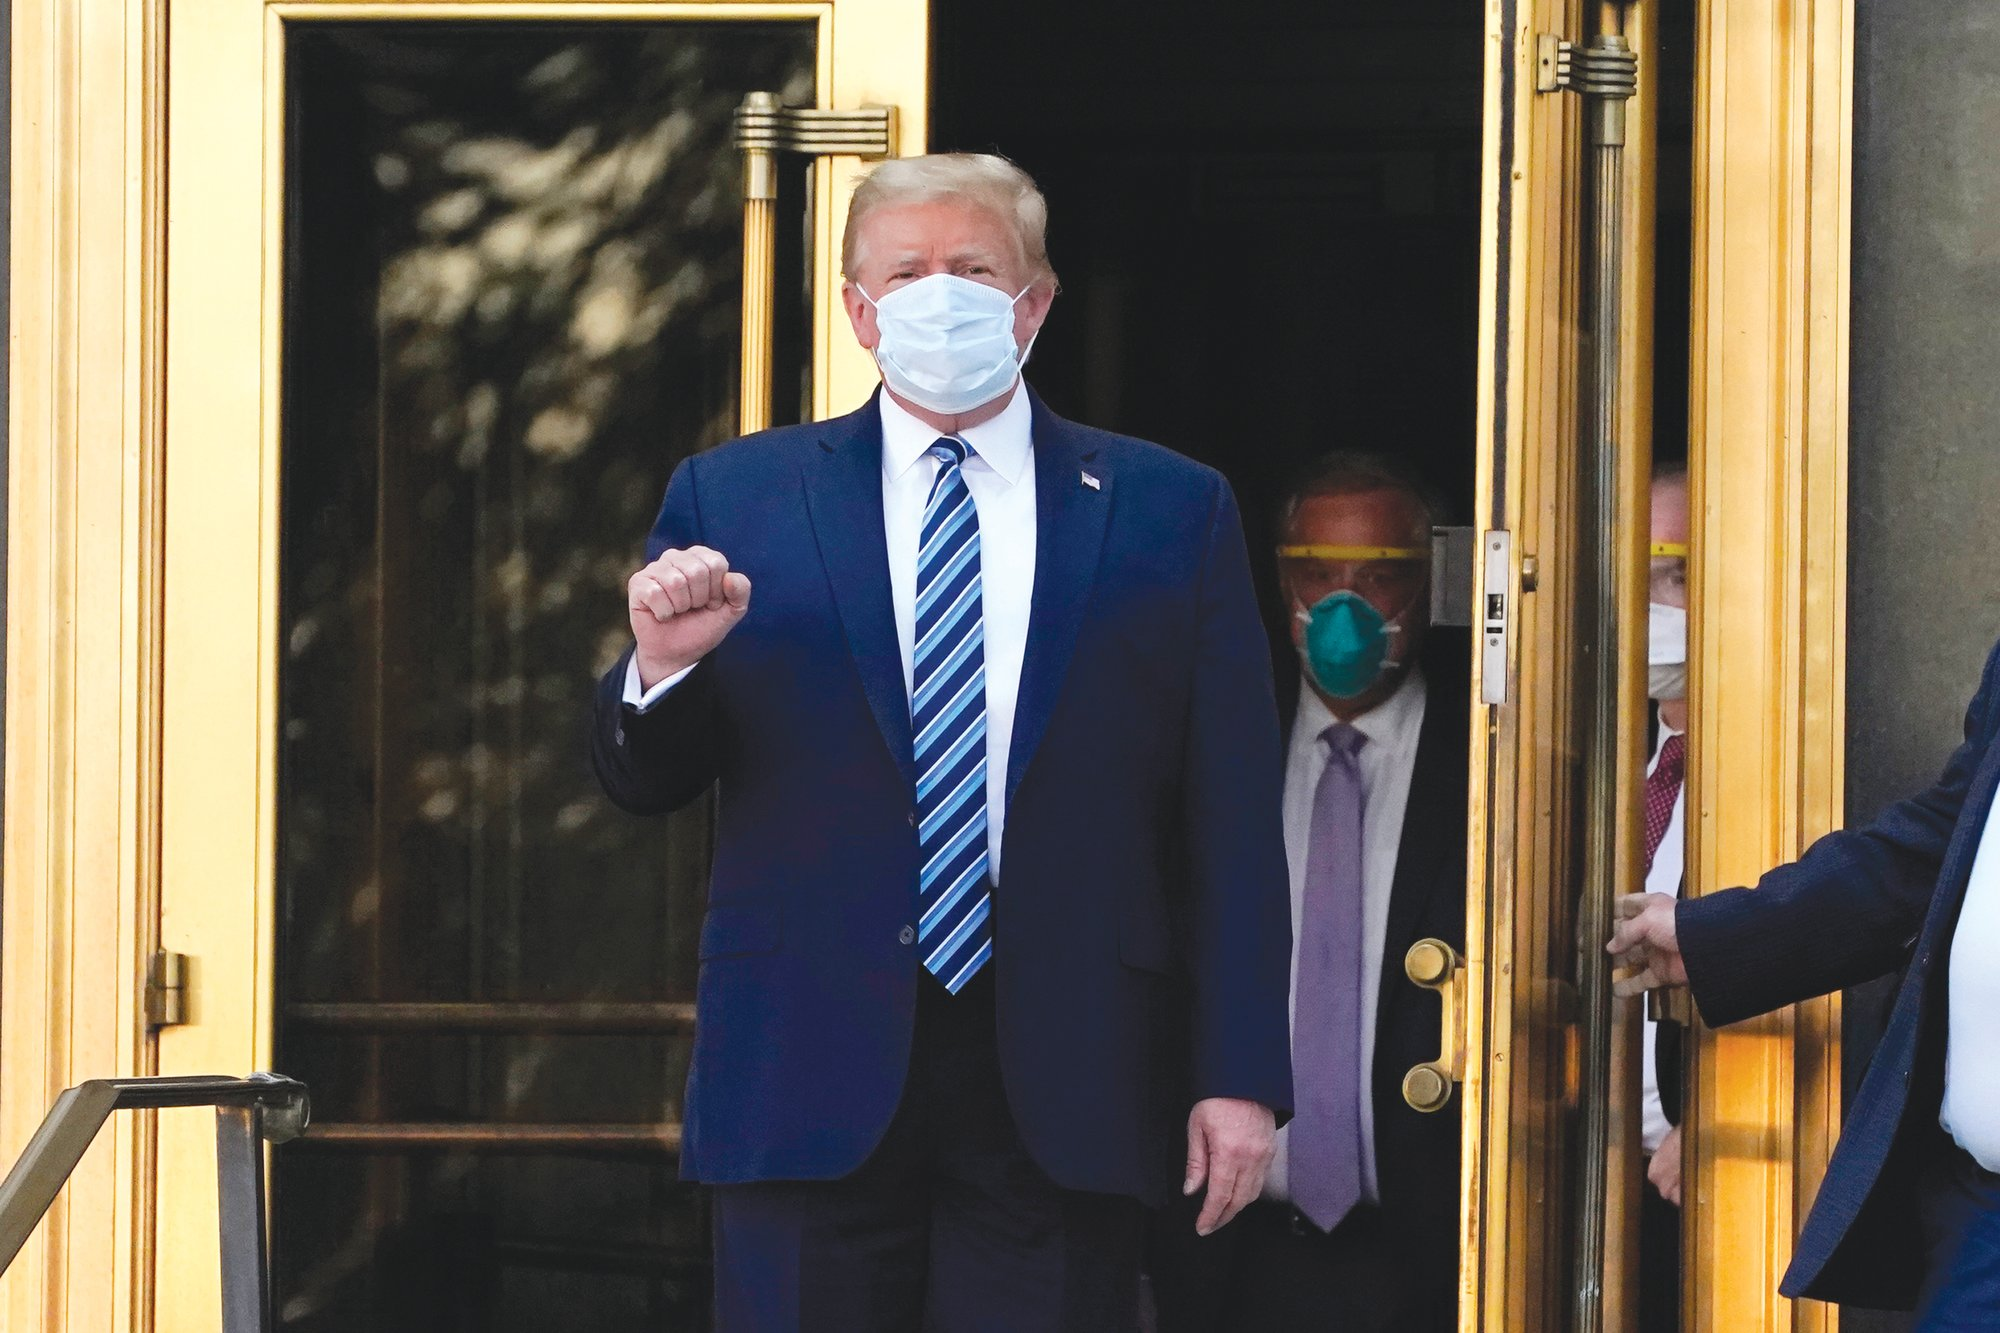 President Donald Trump walks out of Walter Reed National Military Medical Center to return to the White House after receiving treatments for COVID-19 on Monday, Oct. 5, 2020, in Bethesda, Maryland.